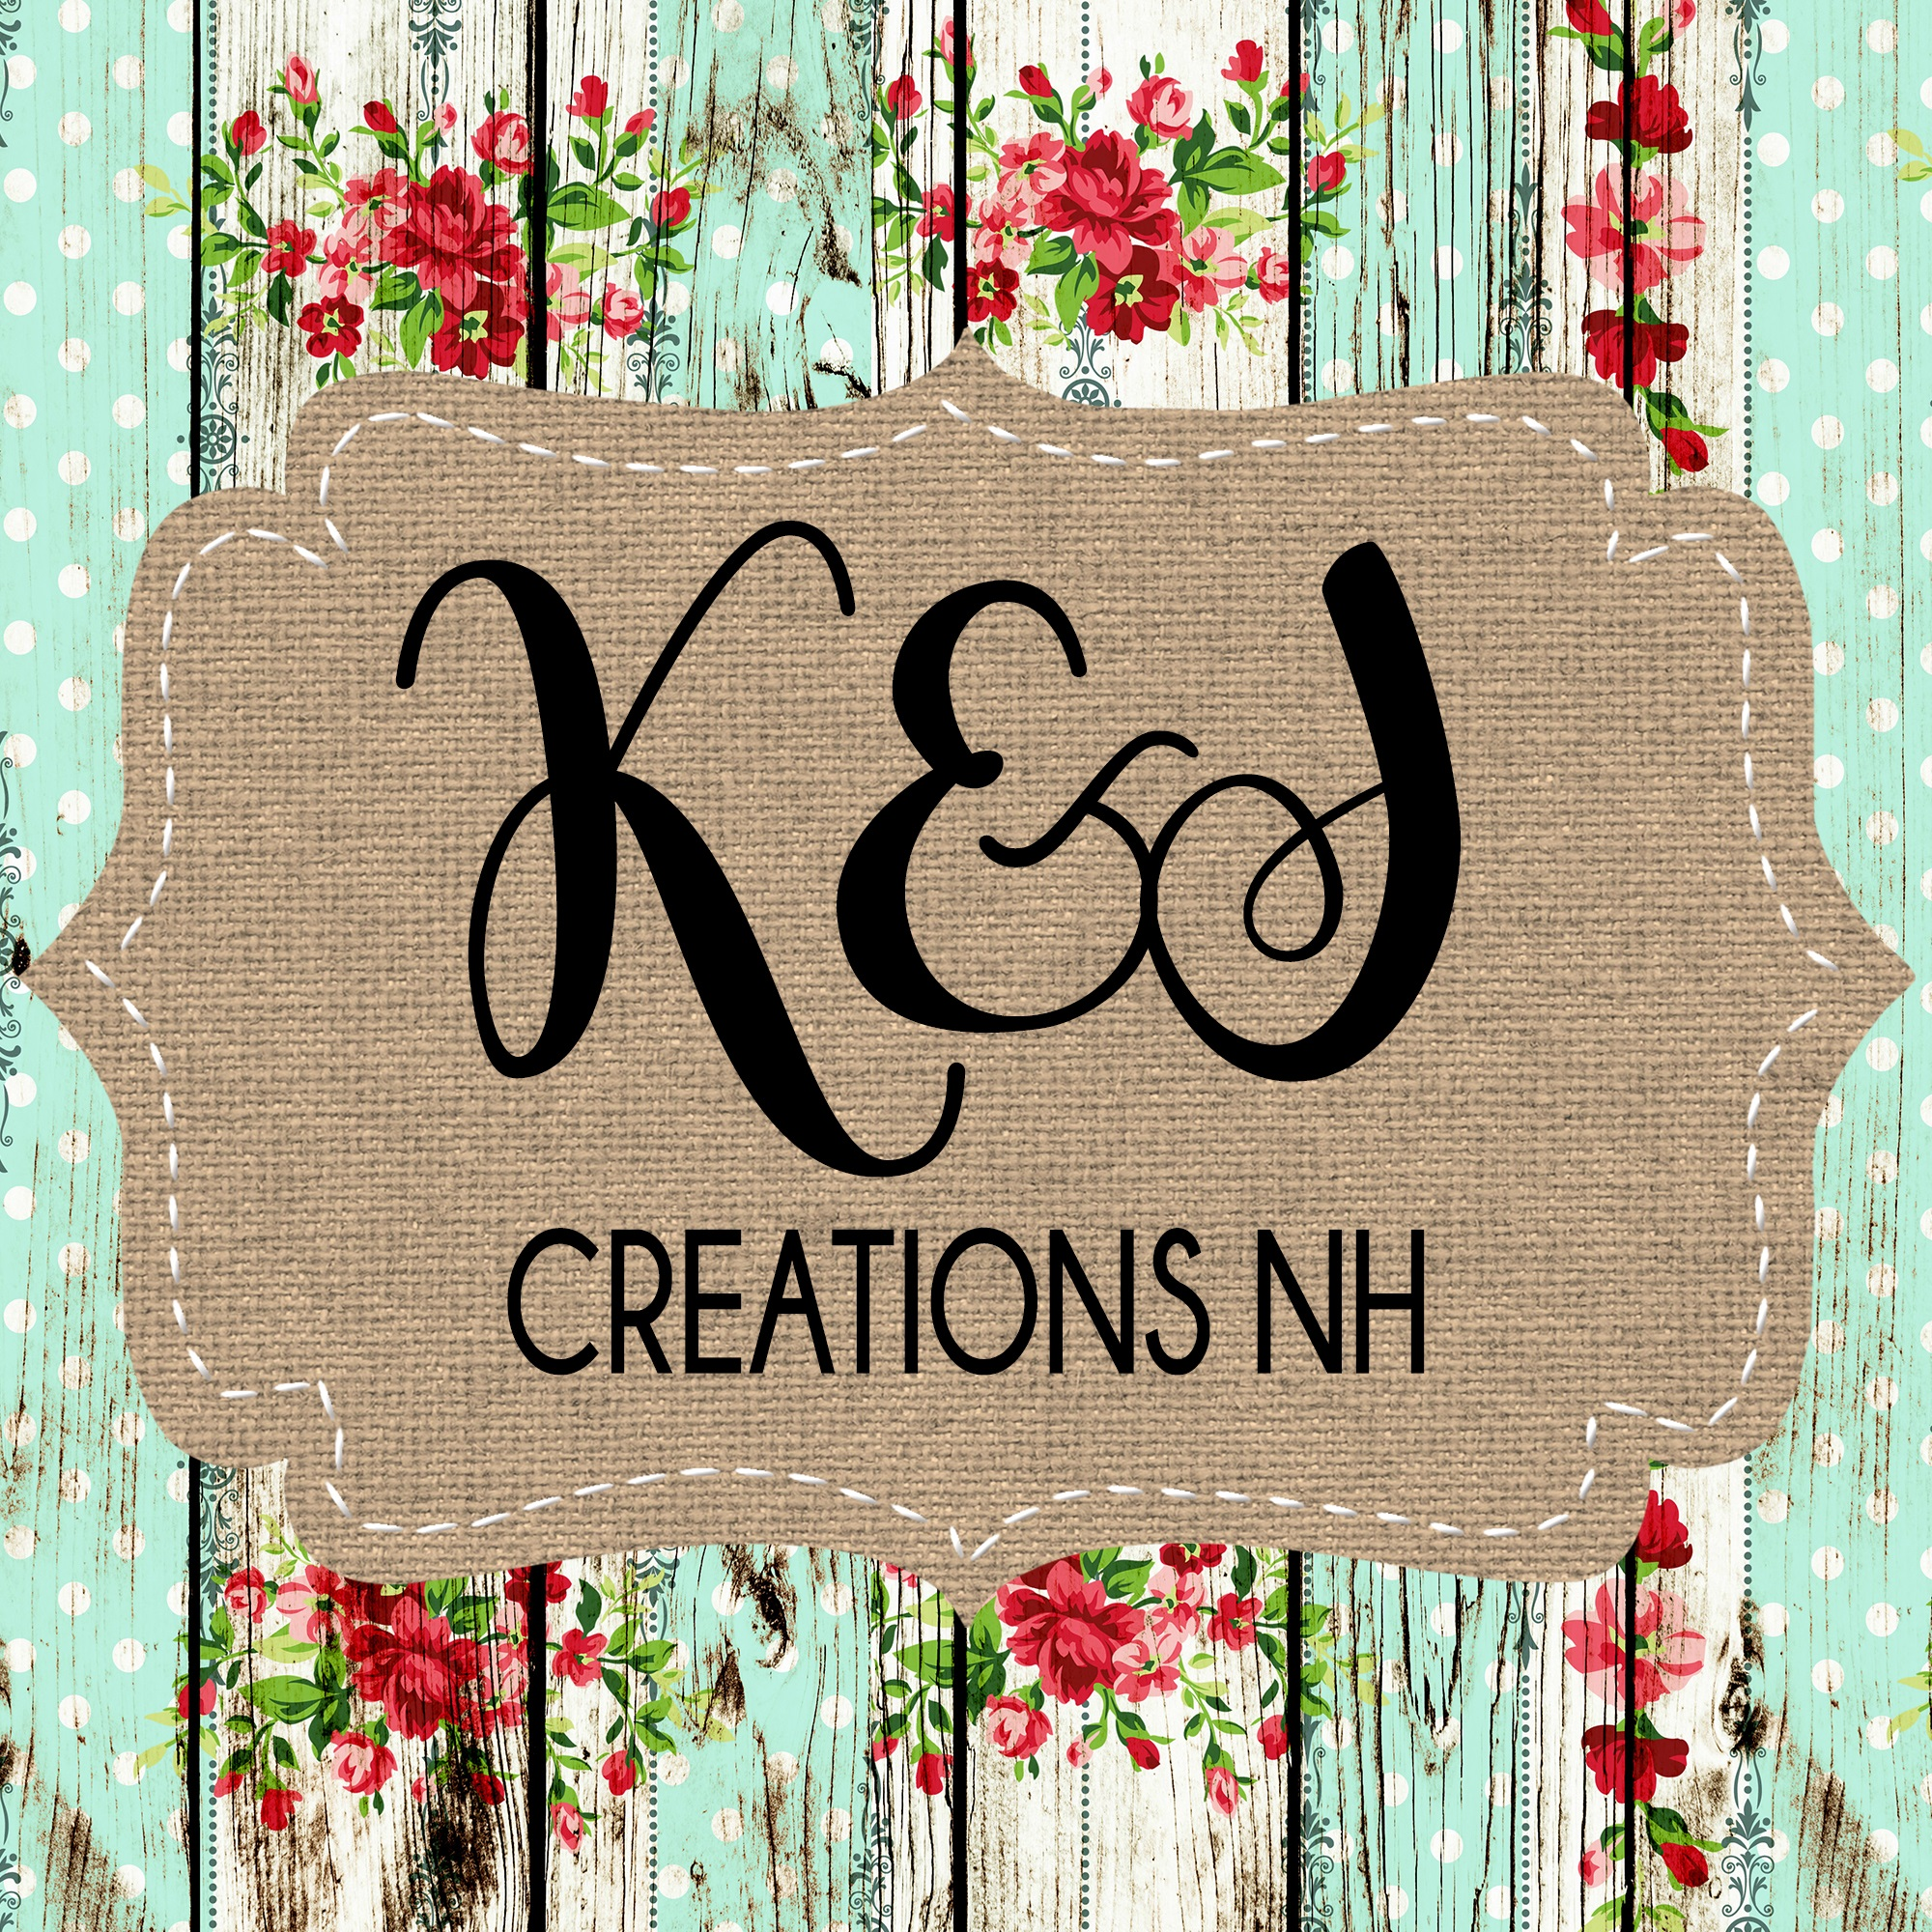 K and J Creations NH